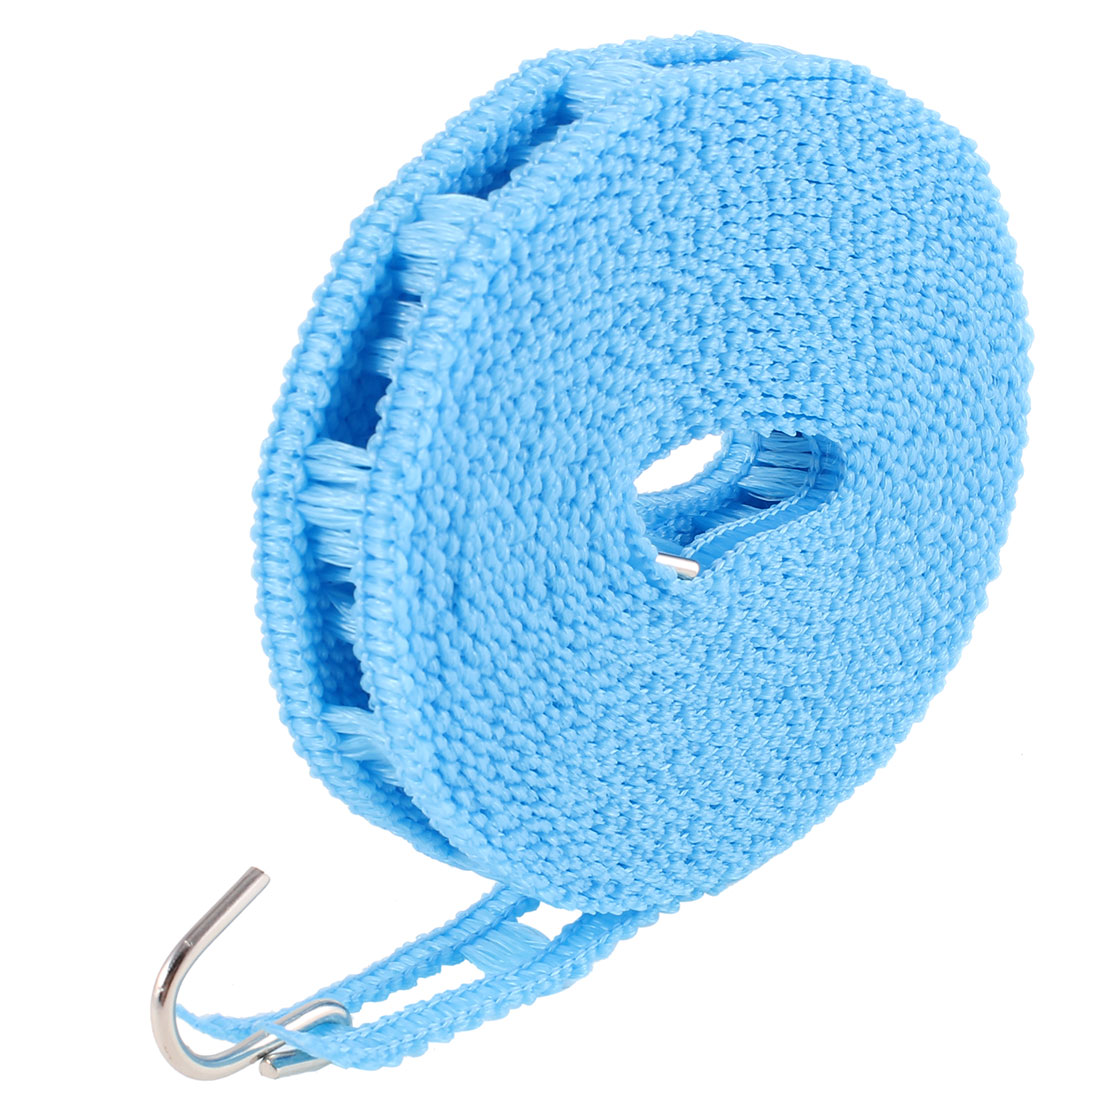 Outdoor 5 Meters Nonslip Flexible Windproof Clothesline Hanging Rope Blue